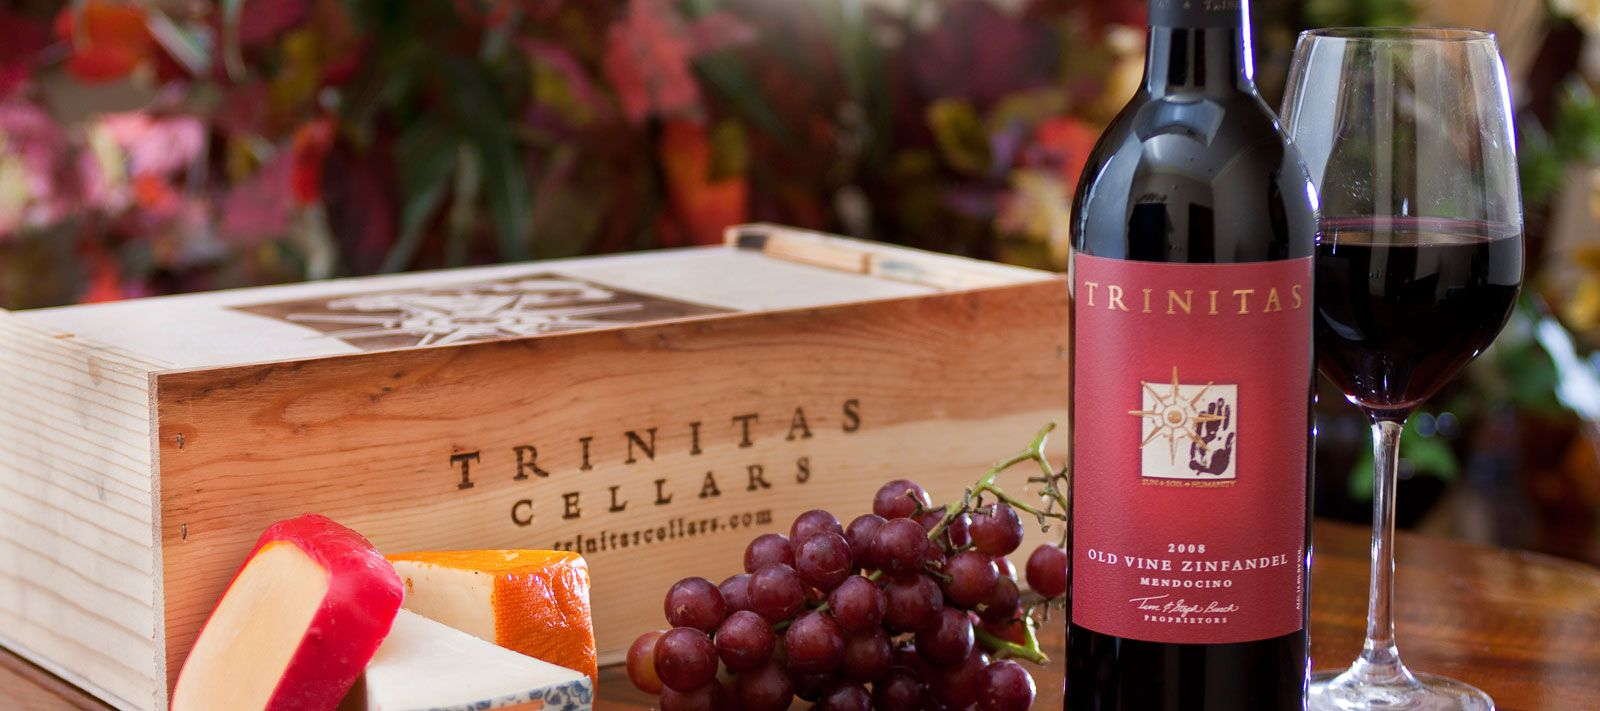 Trinitas Cellars - Located in Napa Valley. Pinot Noir Zinfandel Cabernet Sauvignon Sauvignon Blanc Chardonnay & Trinitas Cellars - Located in Napa Valley. Pinot Noir Zinfandel ...